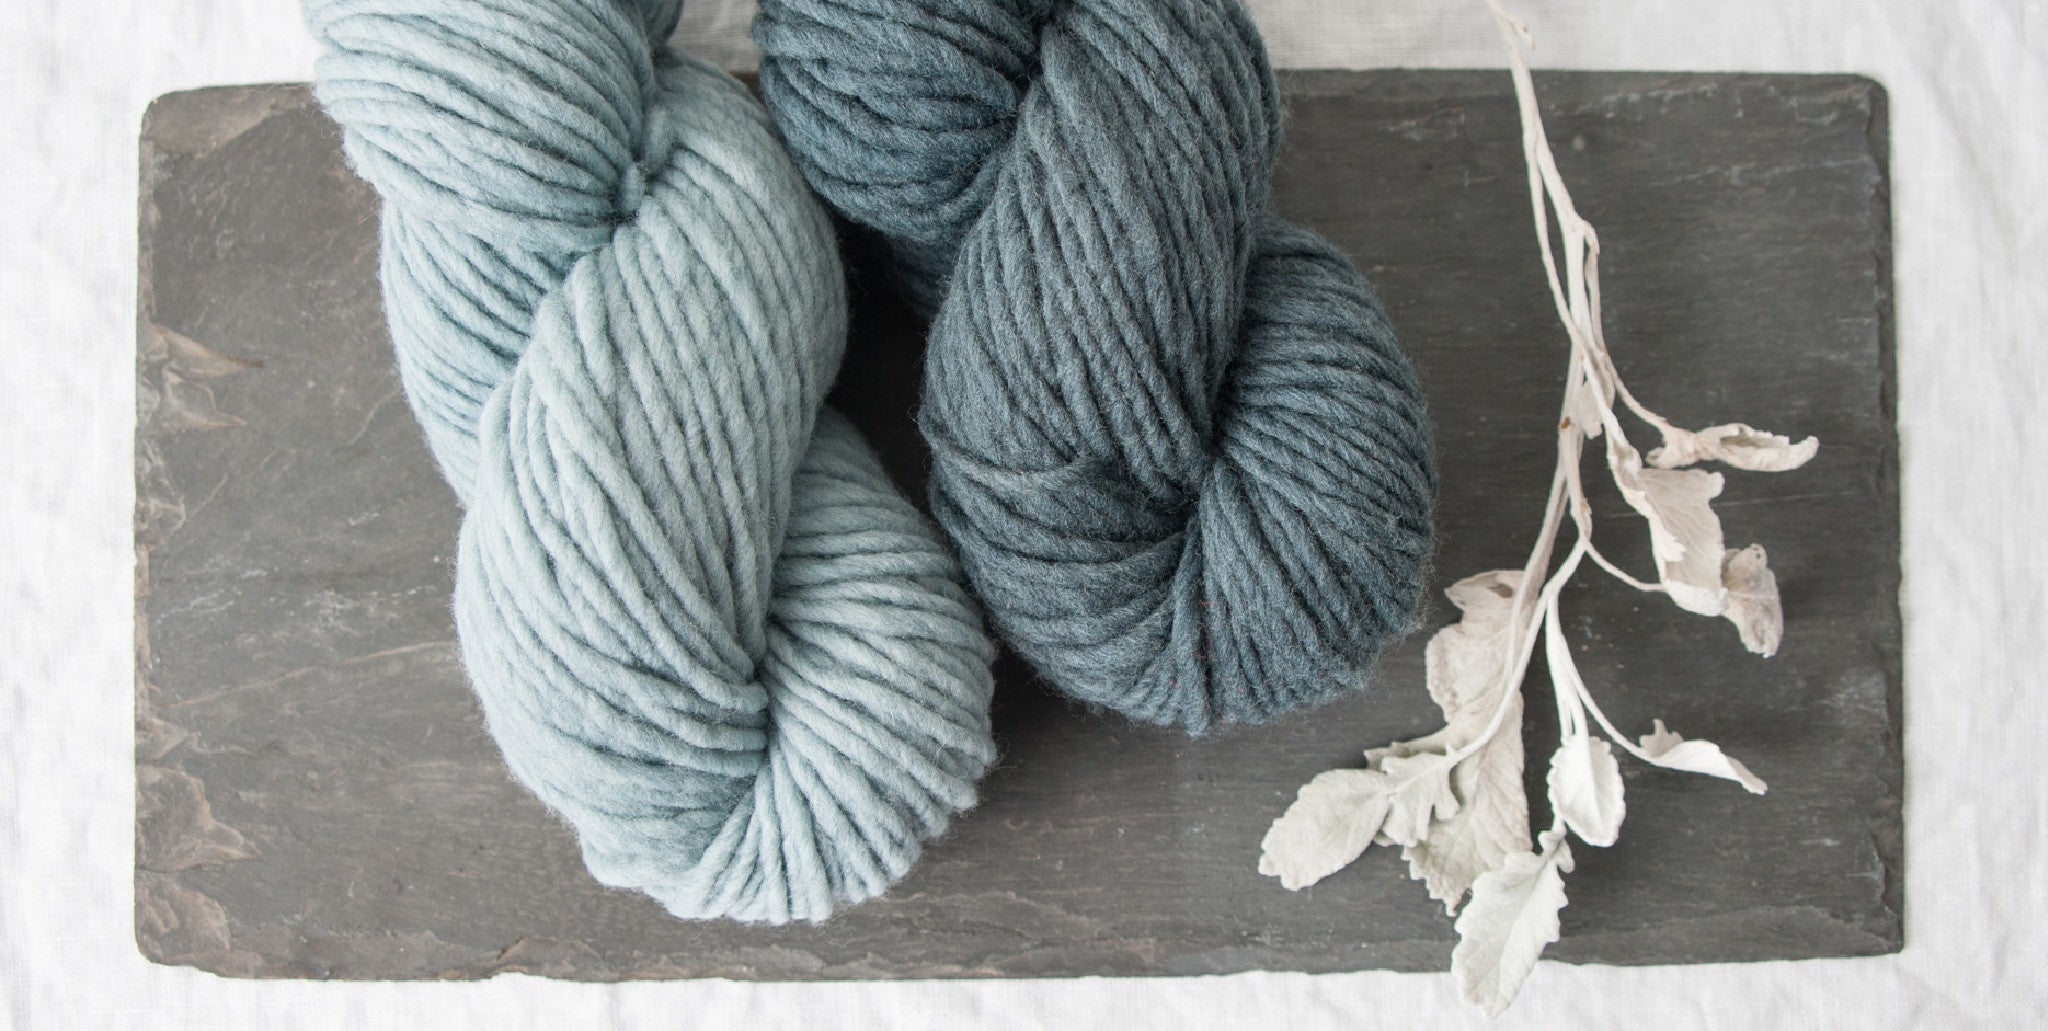 http://quinceandco.com/products/puffin-yarn-wool